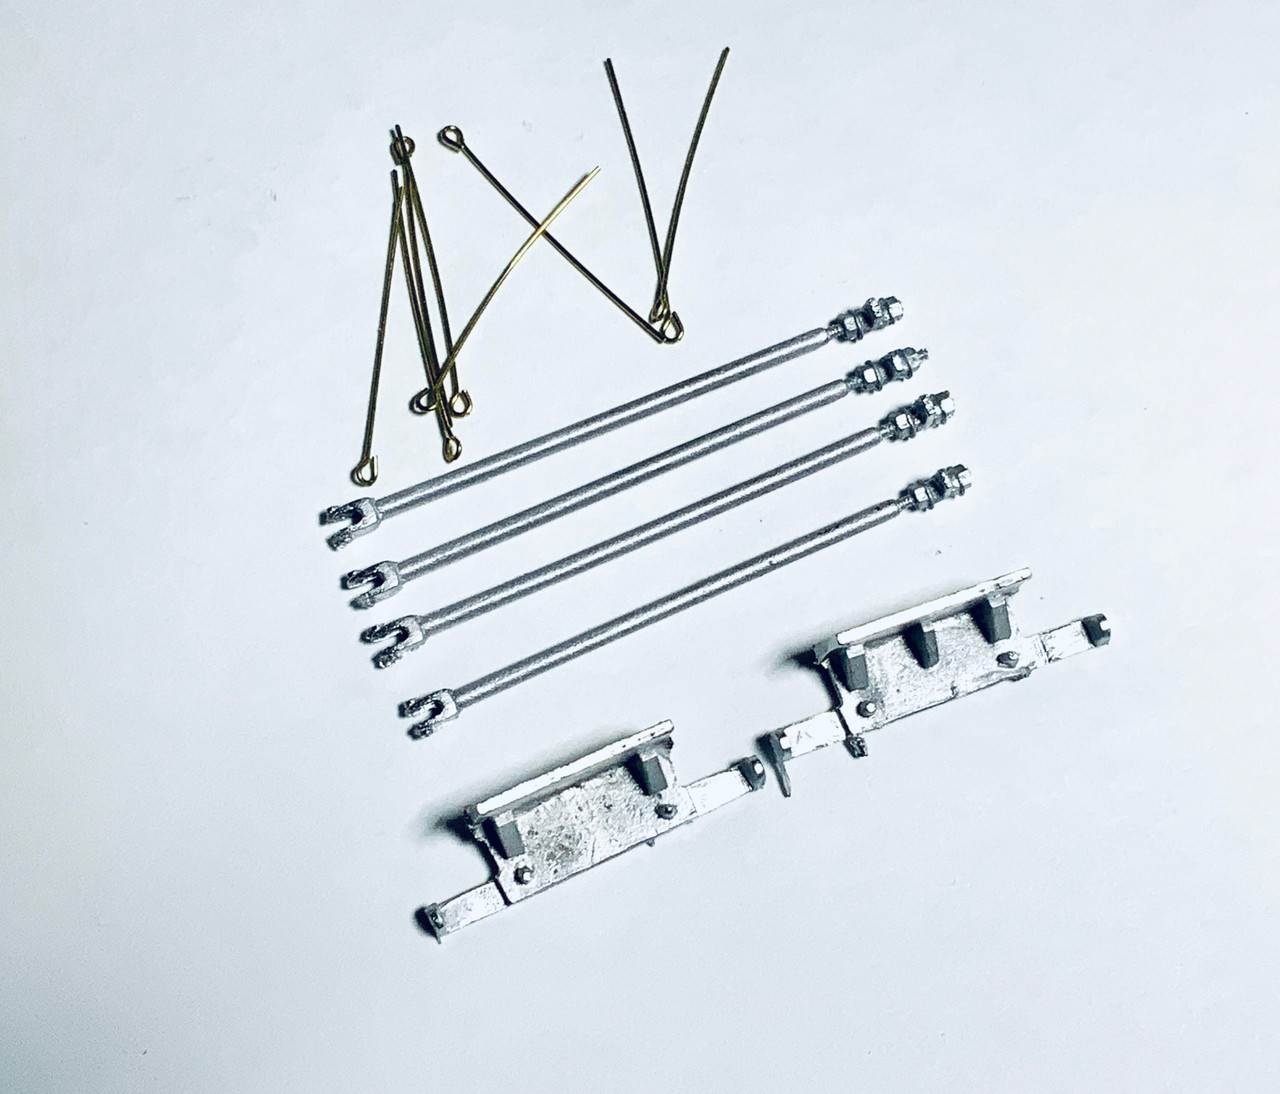 48-026 Diaphragm Support Rod and Hardware Only FKA Keil Line